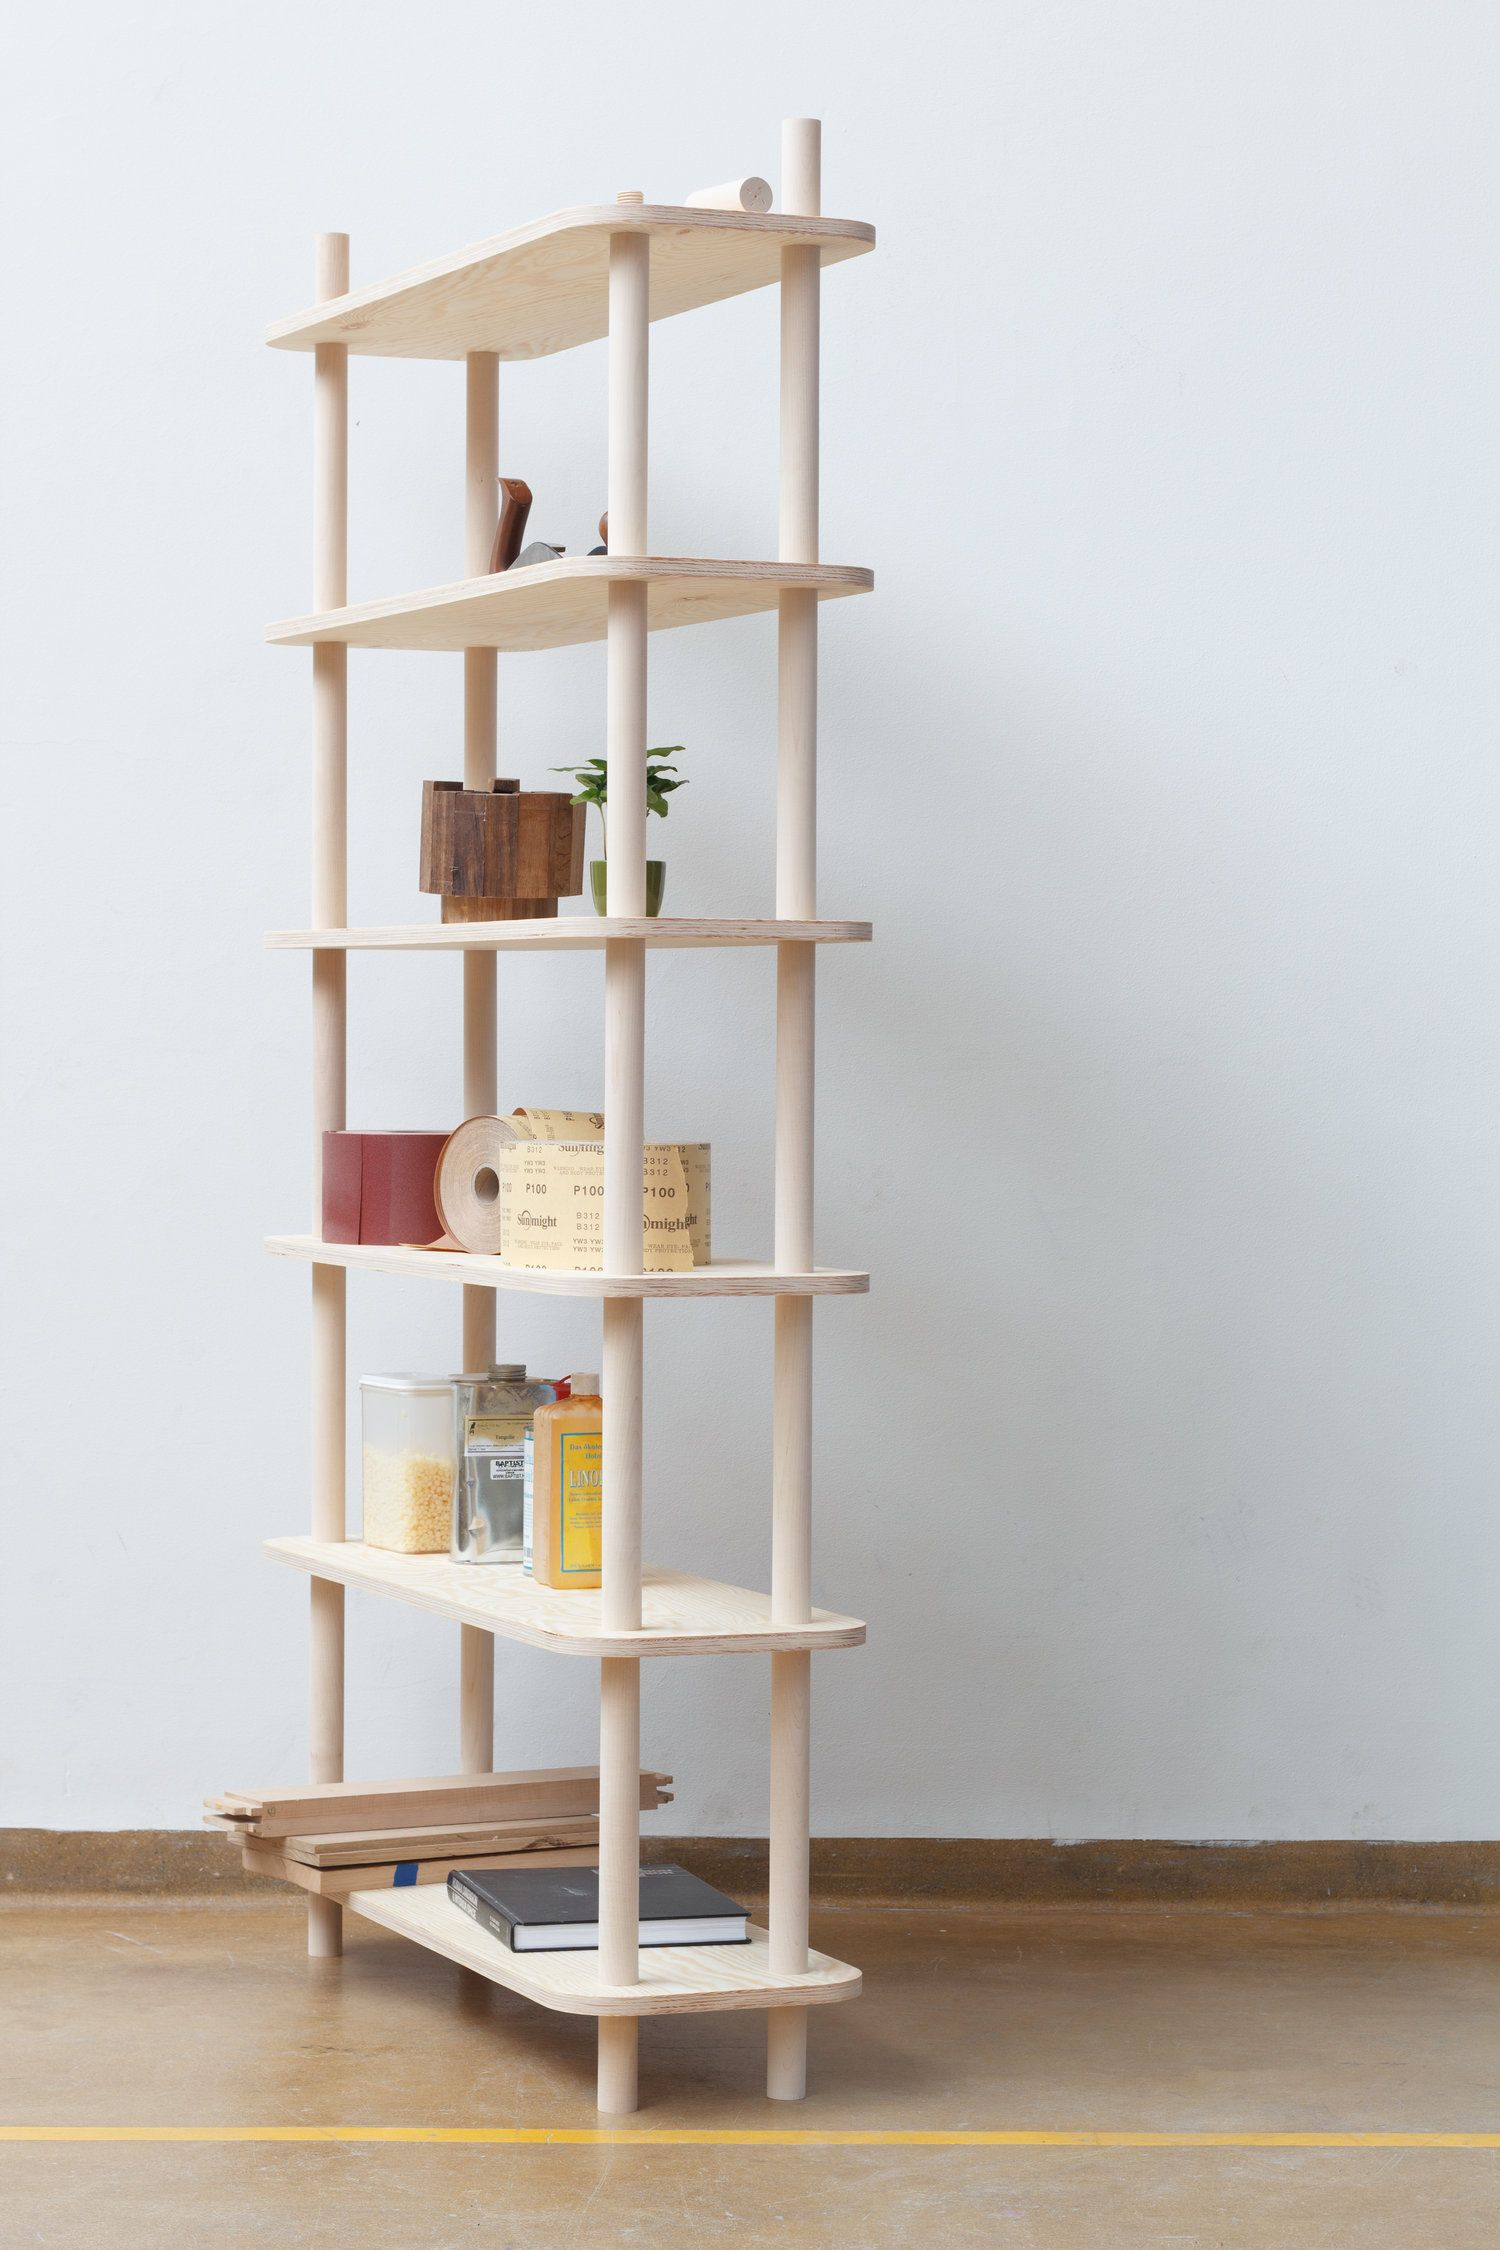 Amazing TS1 Is A Modular Shelving System Put Together Relying On Threaded Wooden  Rods. The Shelves Awesome Ideas